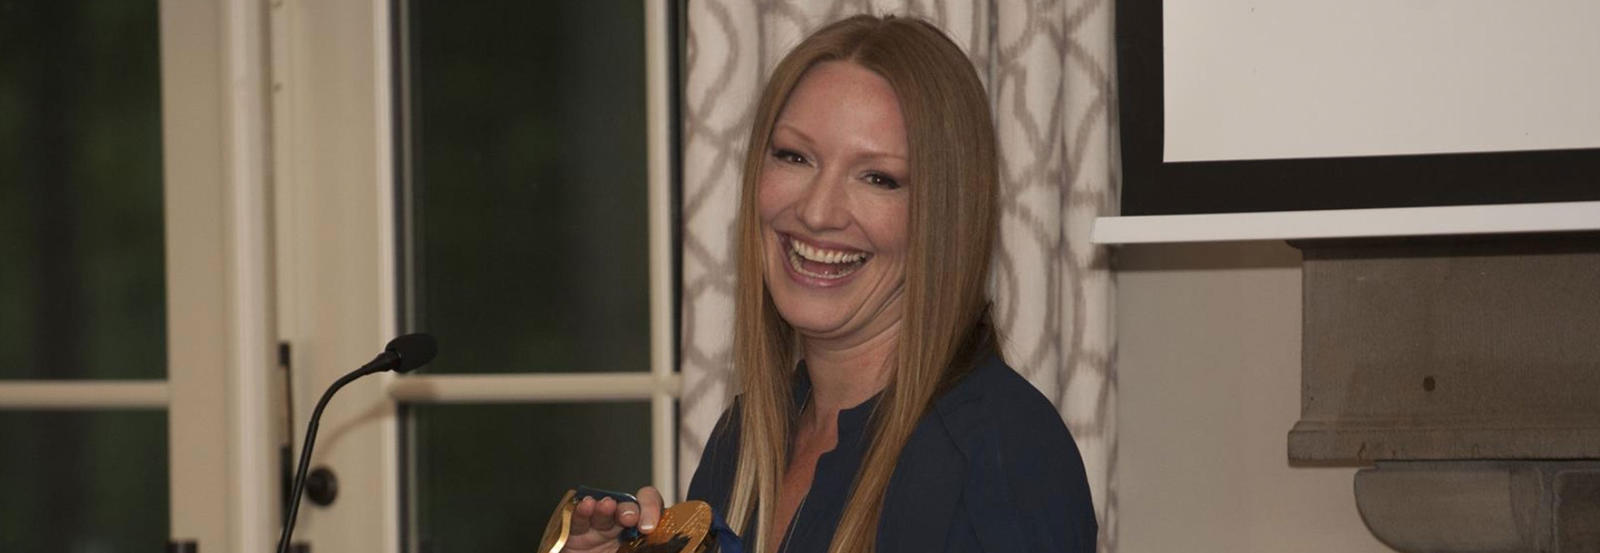 Heather Moyse holds up her Olympic medal.